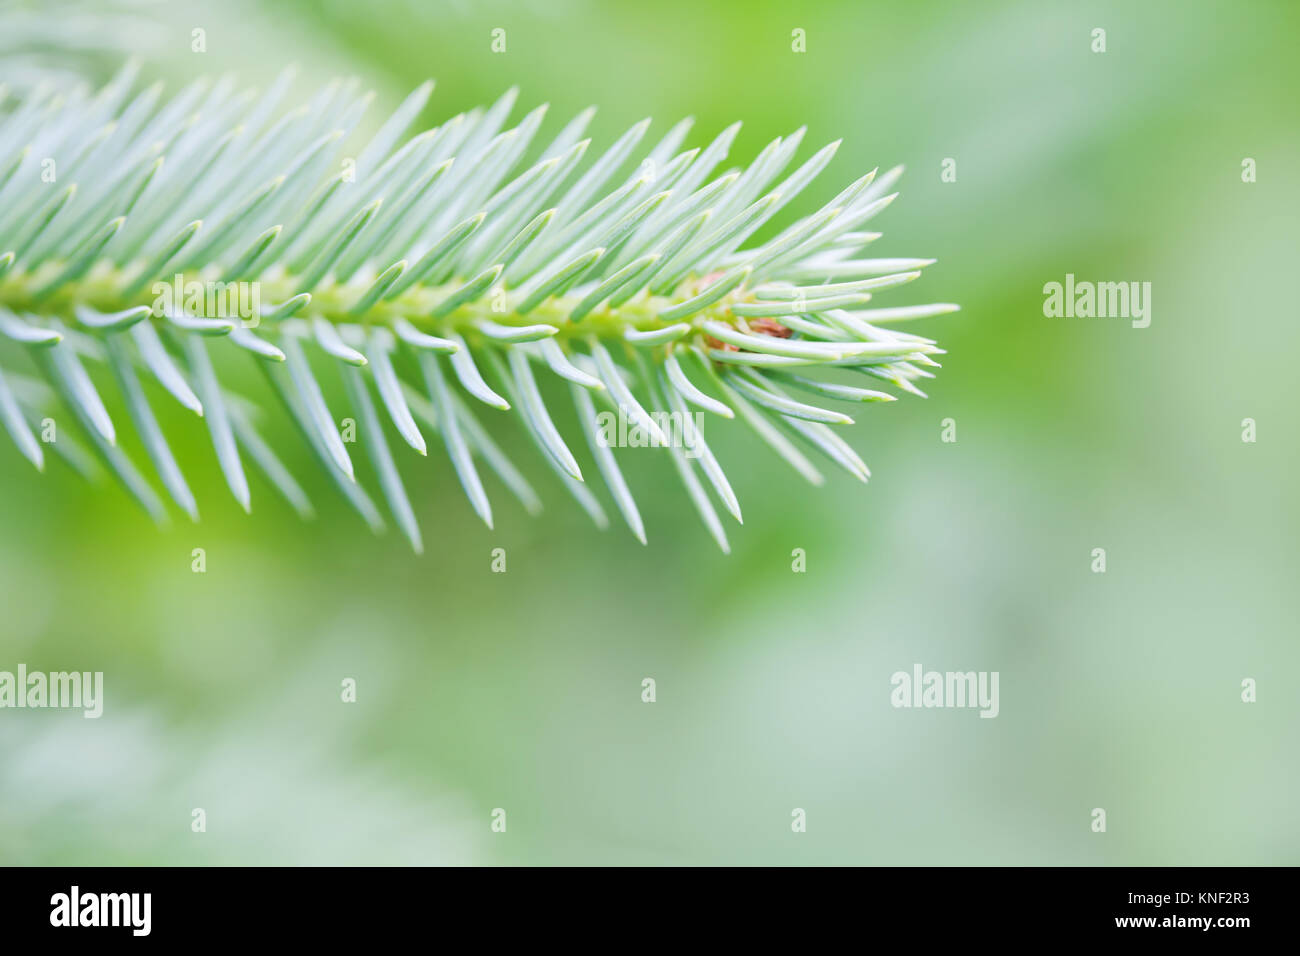 Photography Xmas greenery tree branch. Natural spruce tree. Fir tree soft and blurry background. Daylight. macro - Stock Image